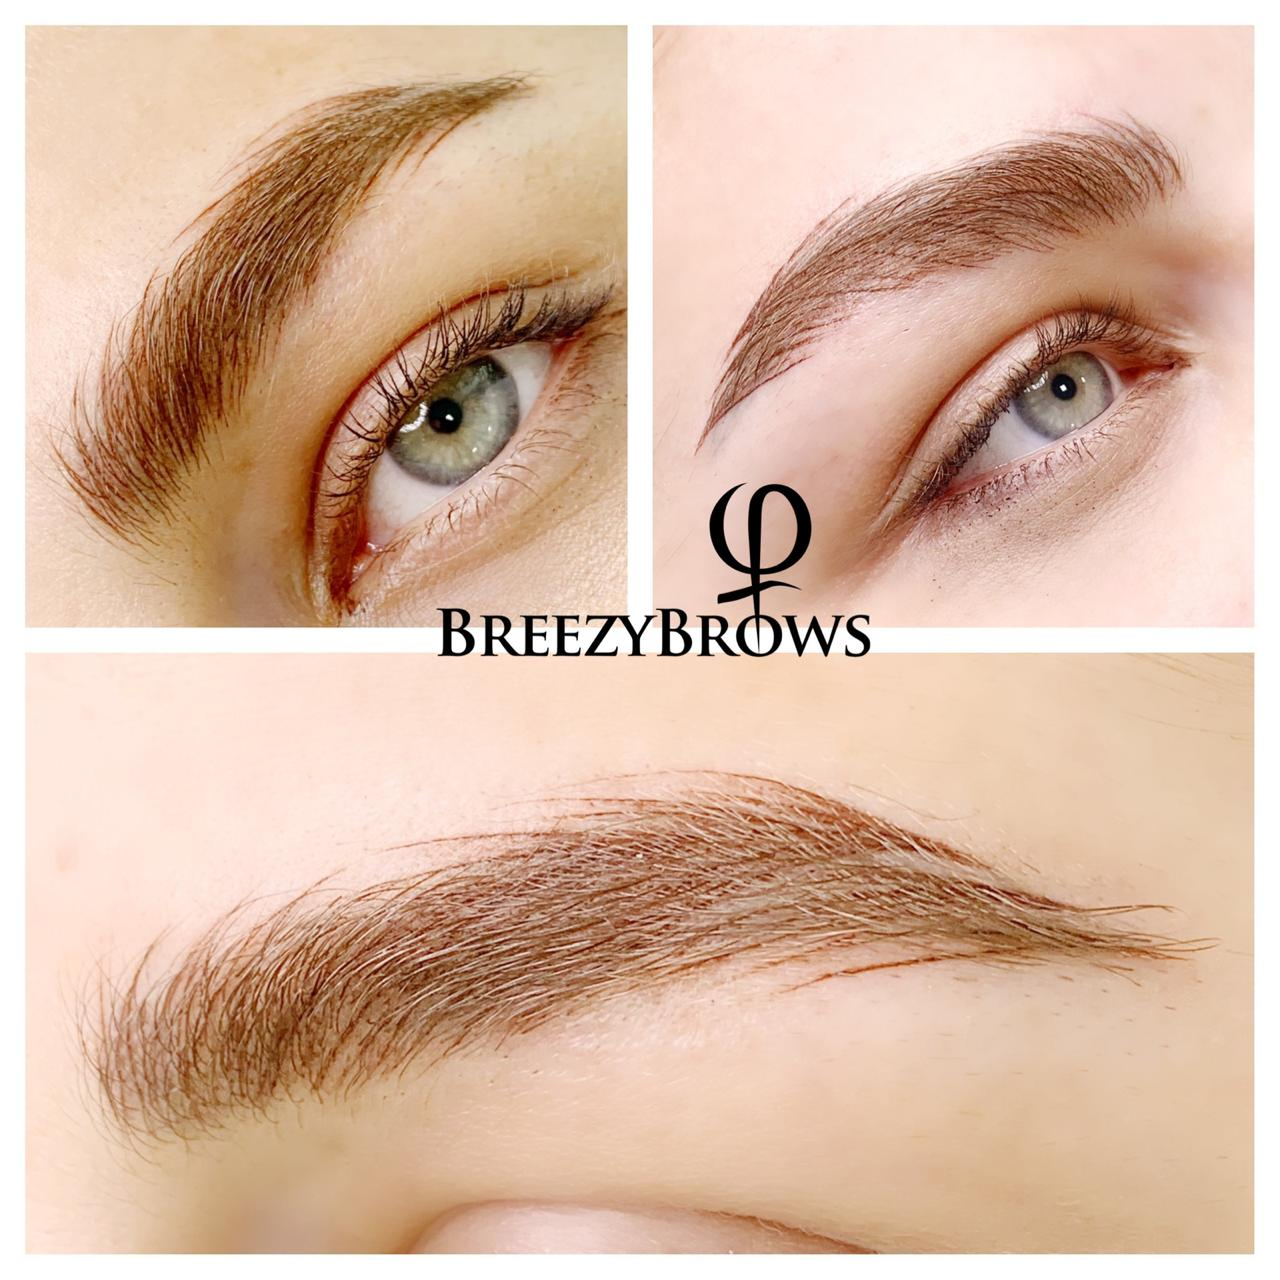 BreezyBrows Perfection Course